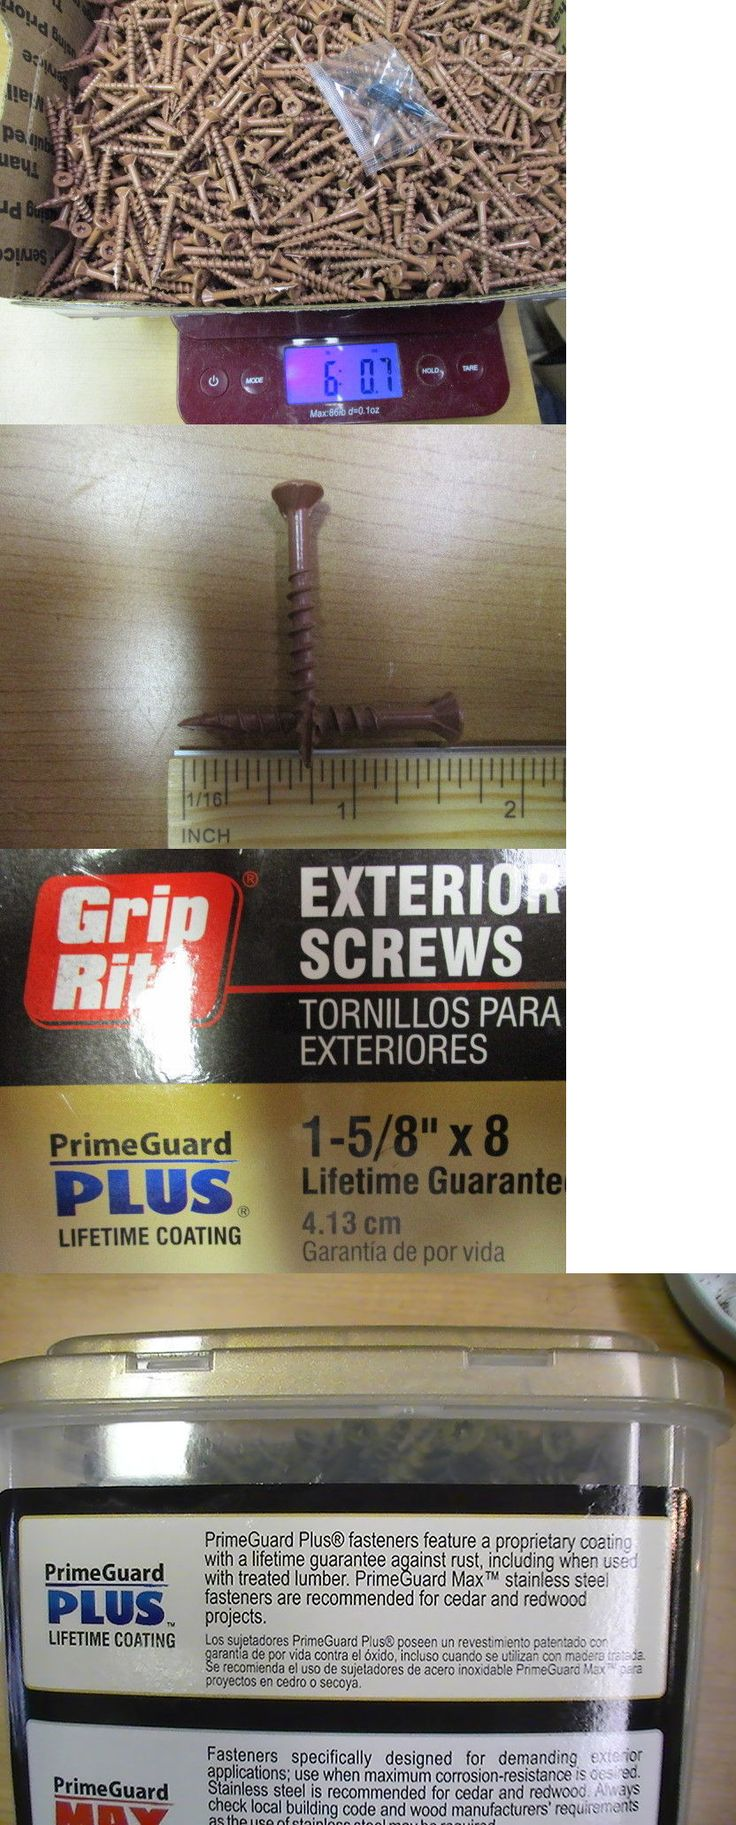 Screws and Bolts 180976: 6 Pounds Grip Rite 1-5 8 Red Deck Screws Exterior Acq Wood. Star Drive,1 Bit -> BUY IT NOW ONLY: $35.95 on eBay!